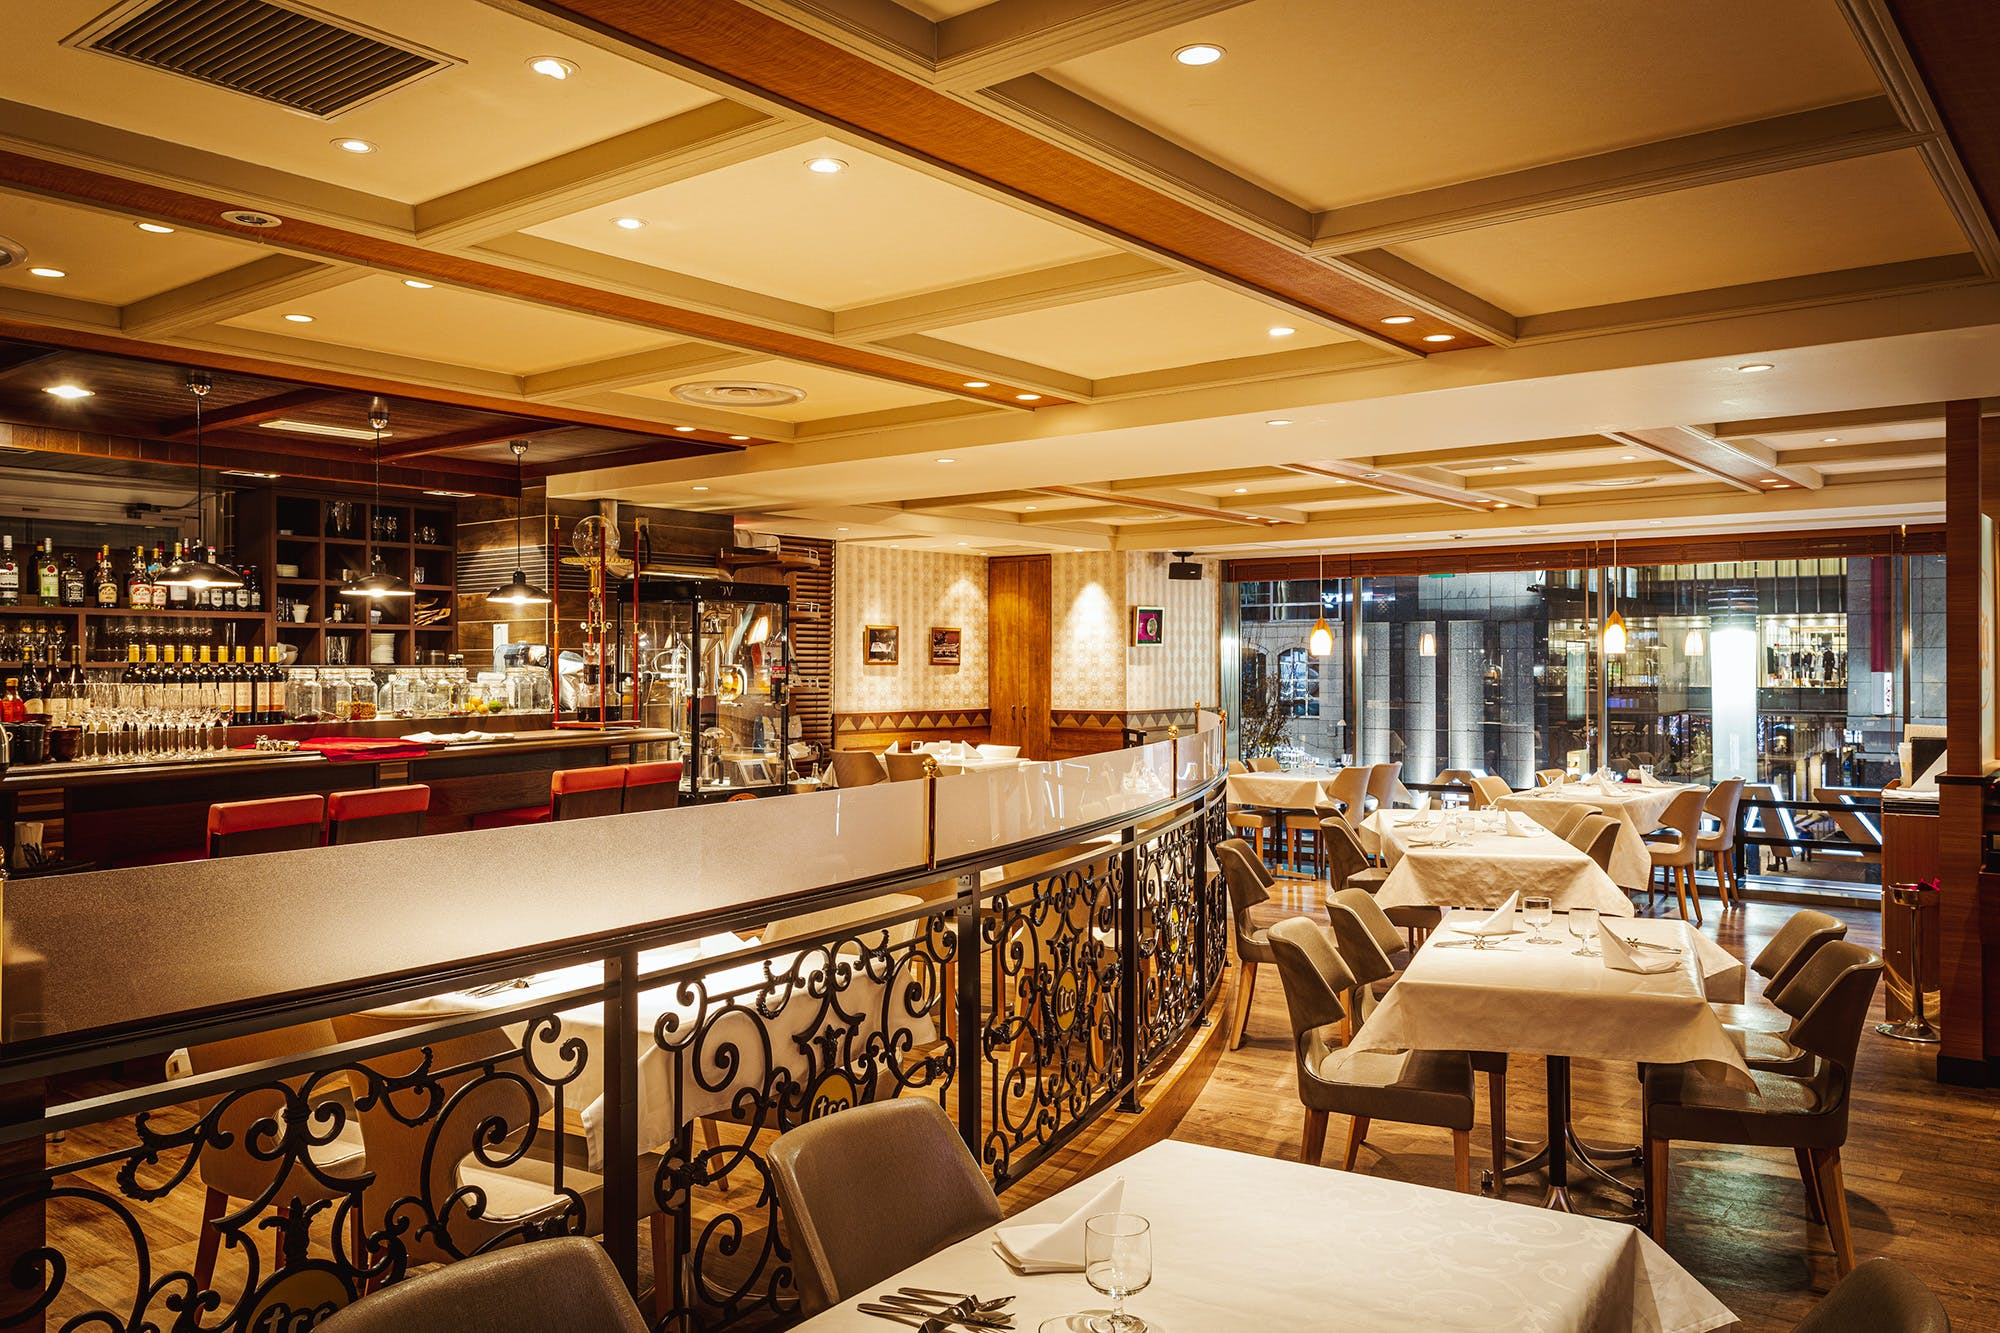 tcc Singaporean Cafe & Diner